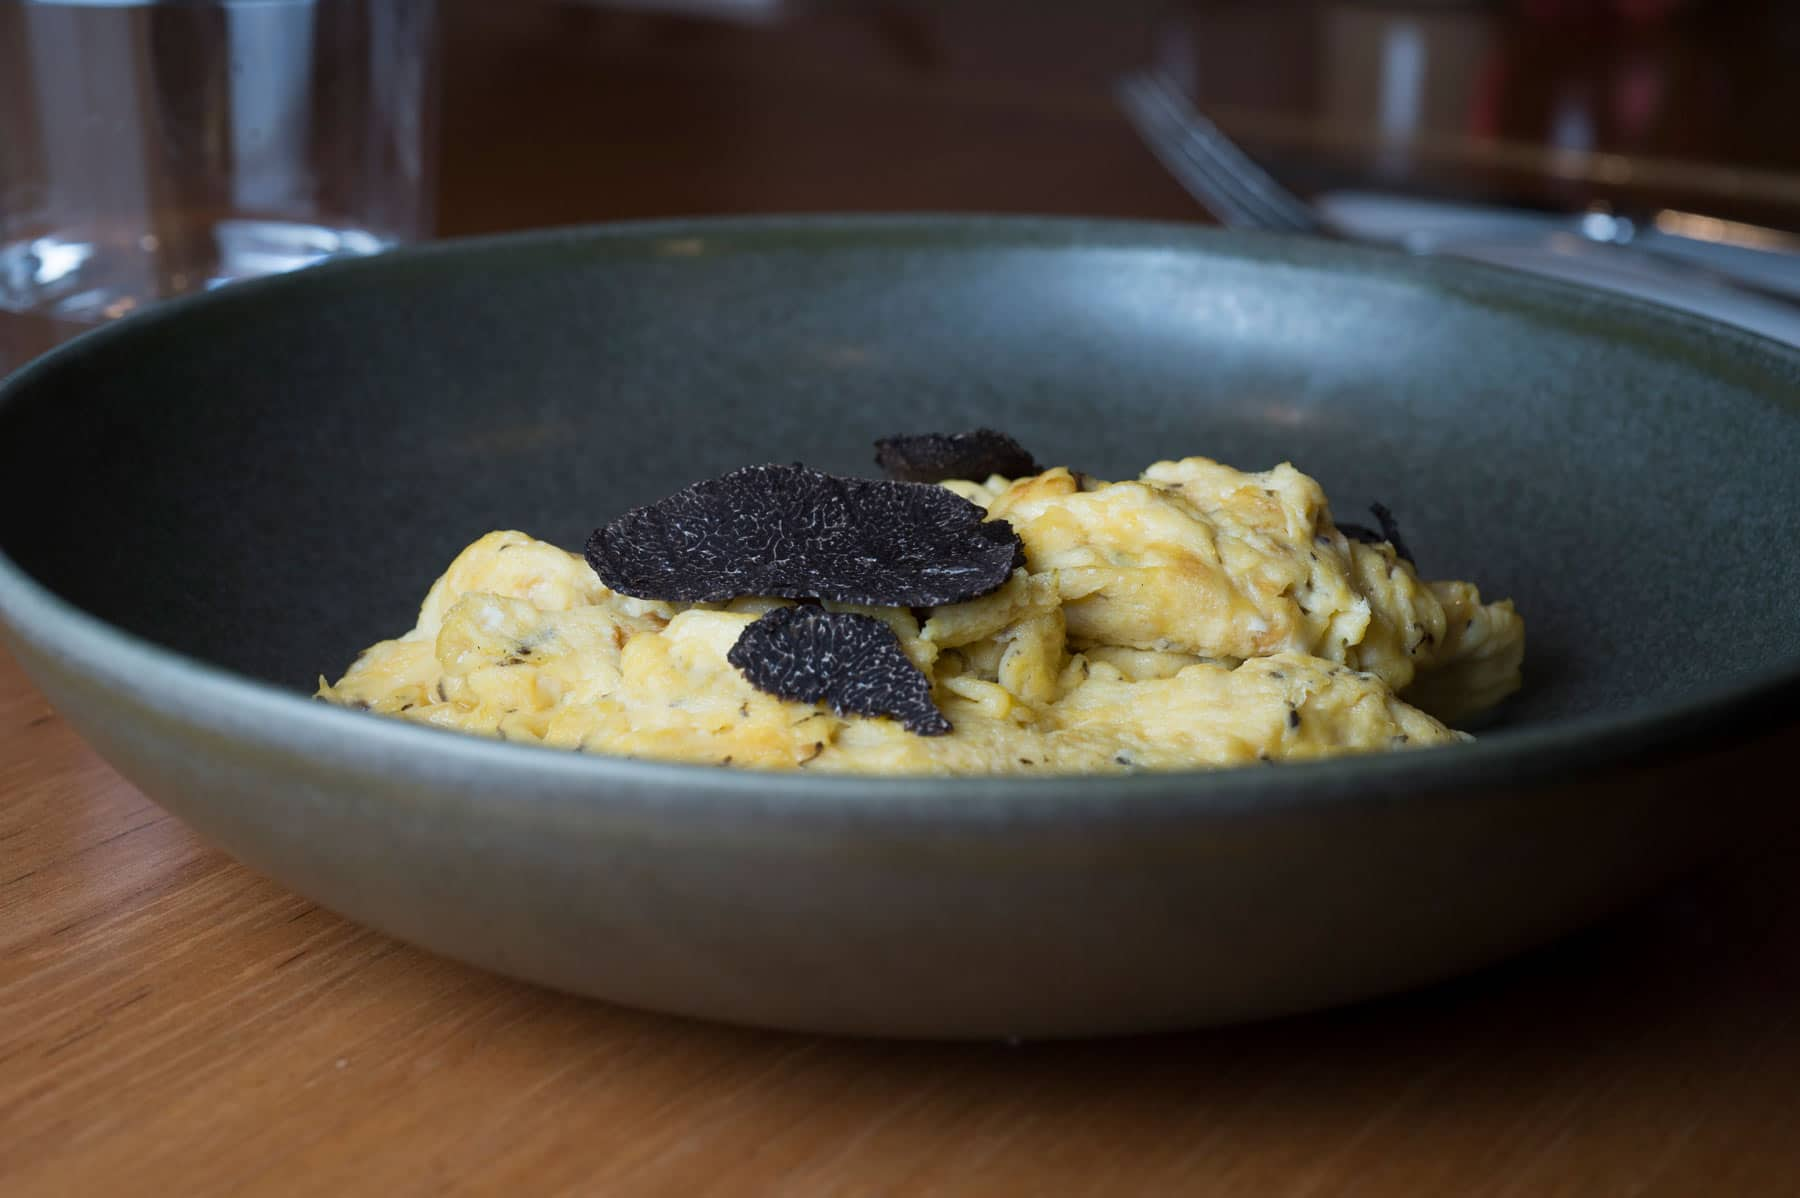 Shaved truffle over truffle-infused scrambled eggs. Simple and sublime!